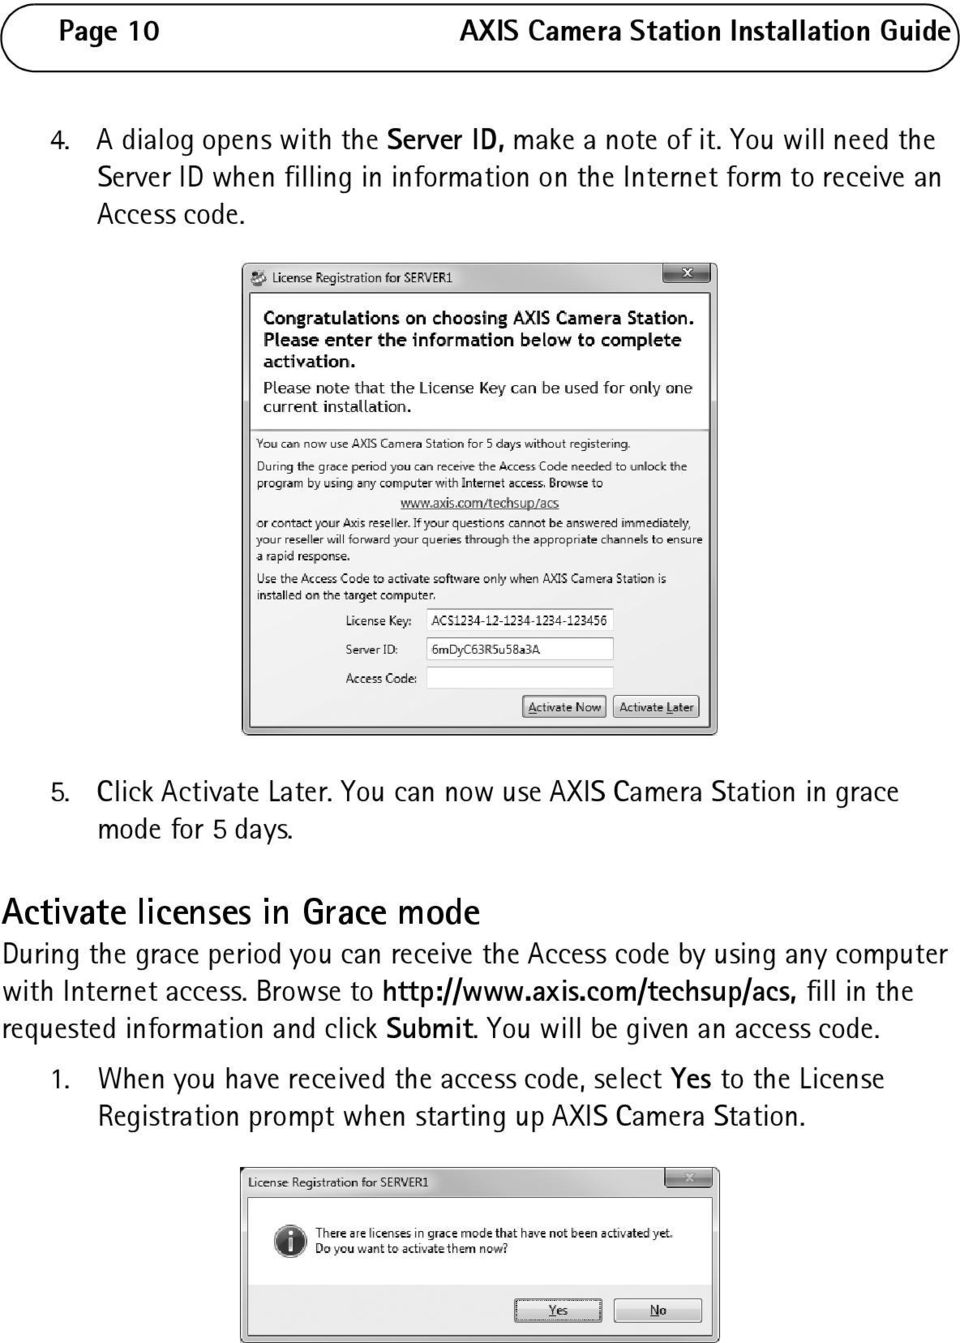 You can now use AXIS Camera Station in grace mode for 5 days.